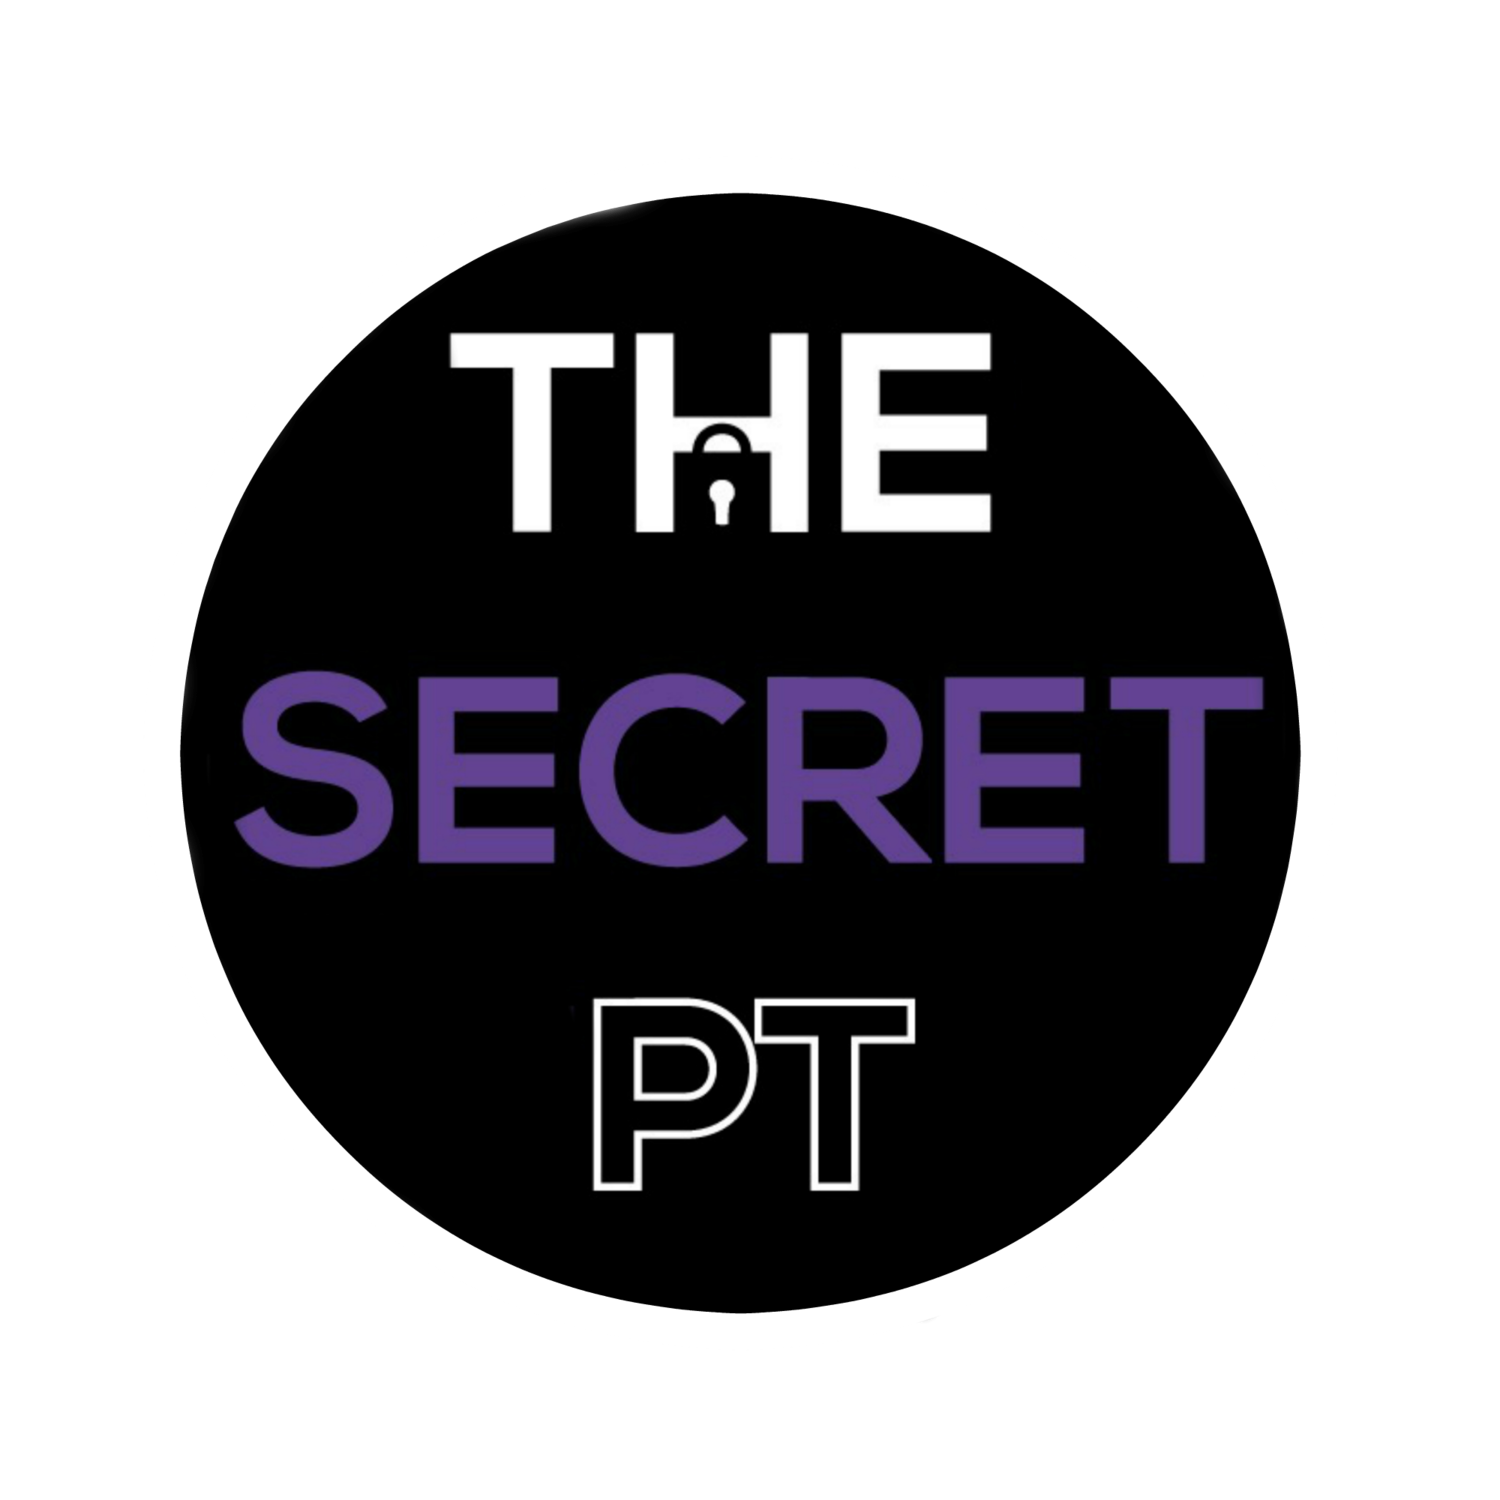 THE SECRET PT - Guaranteed to educate you on Fat Loss!